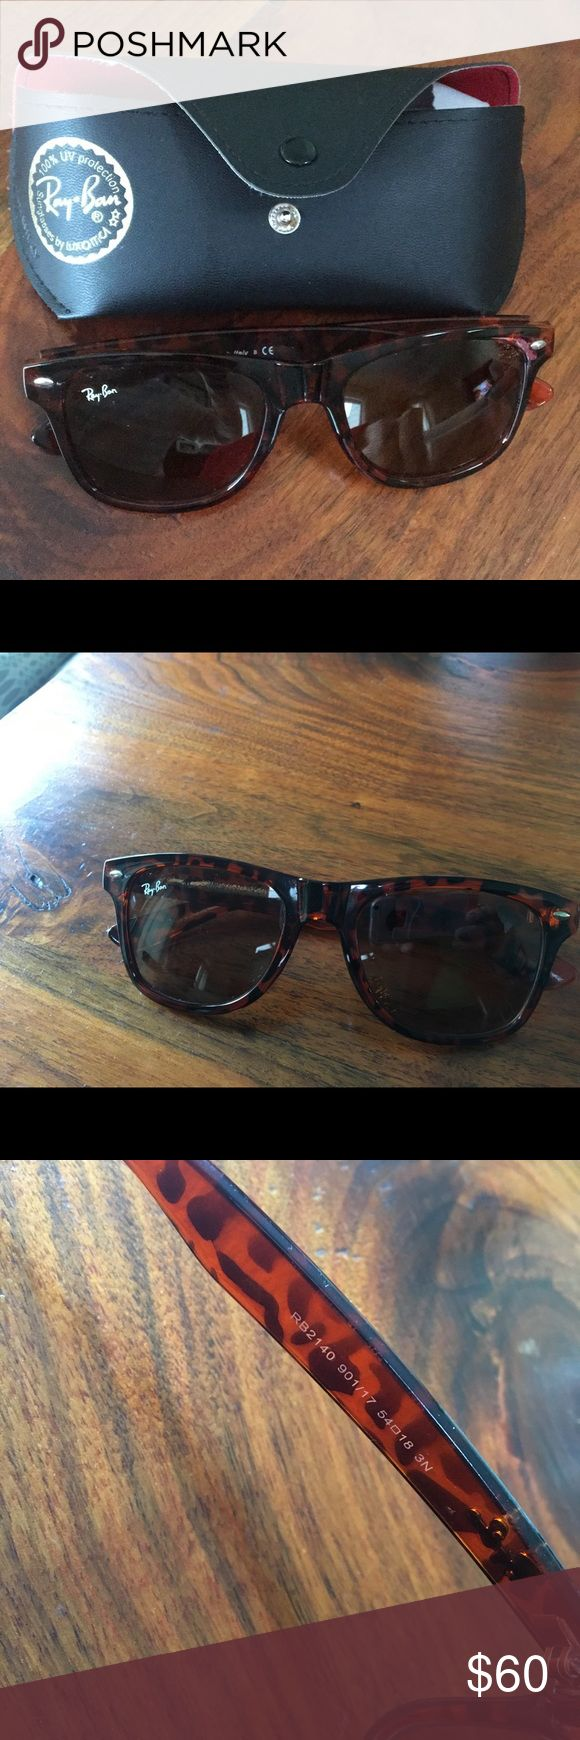 Ray ban wayfarer sunglasses. Tortoise ray bans only worn a couple of times- no visible scratches. Black case included. Ray-Ban Accessories Sunglasses